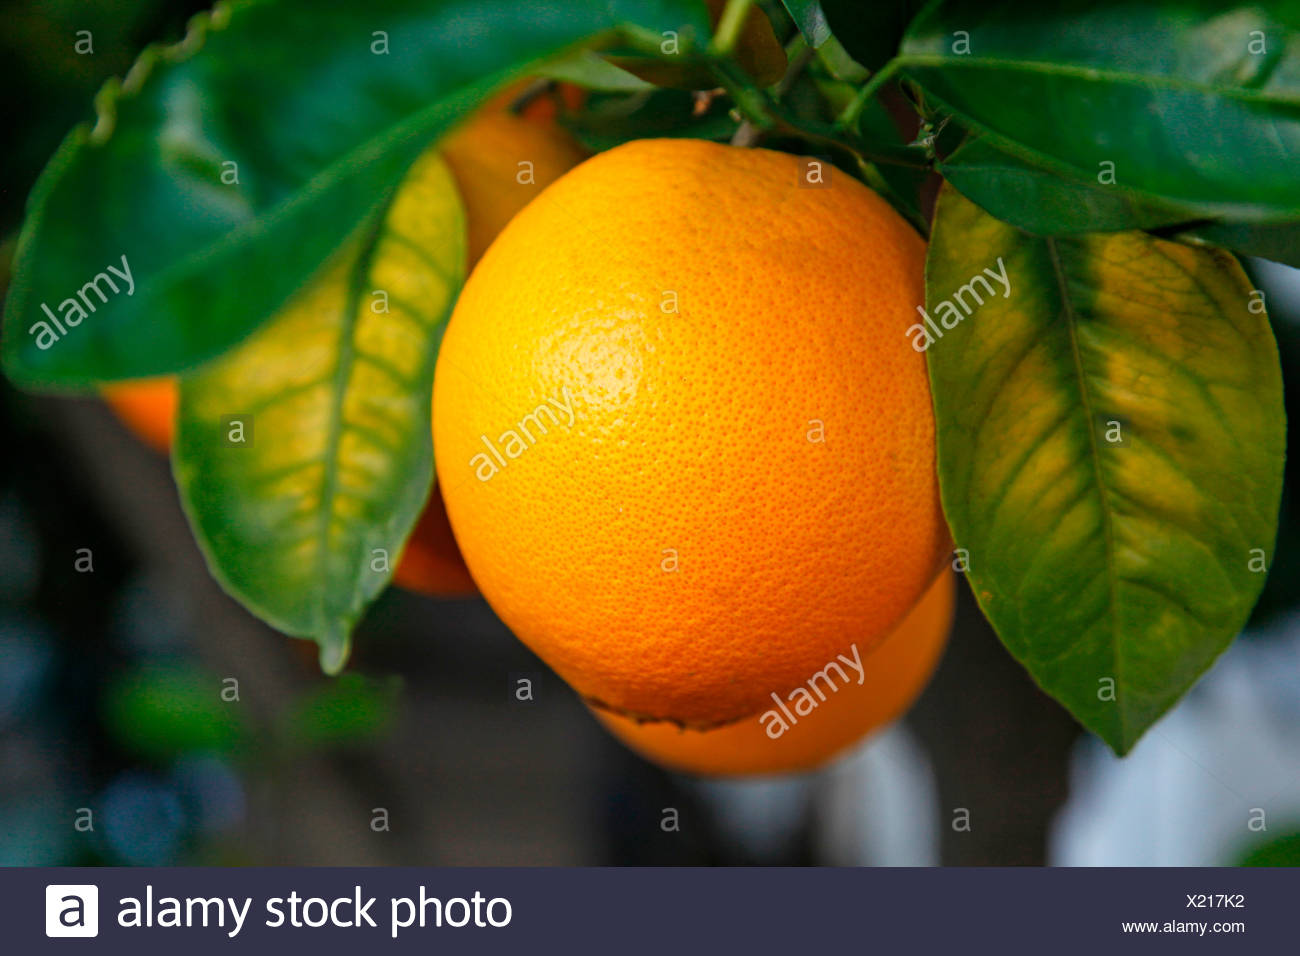 ORANGES GROWING ON TREE - Stock Image